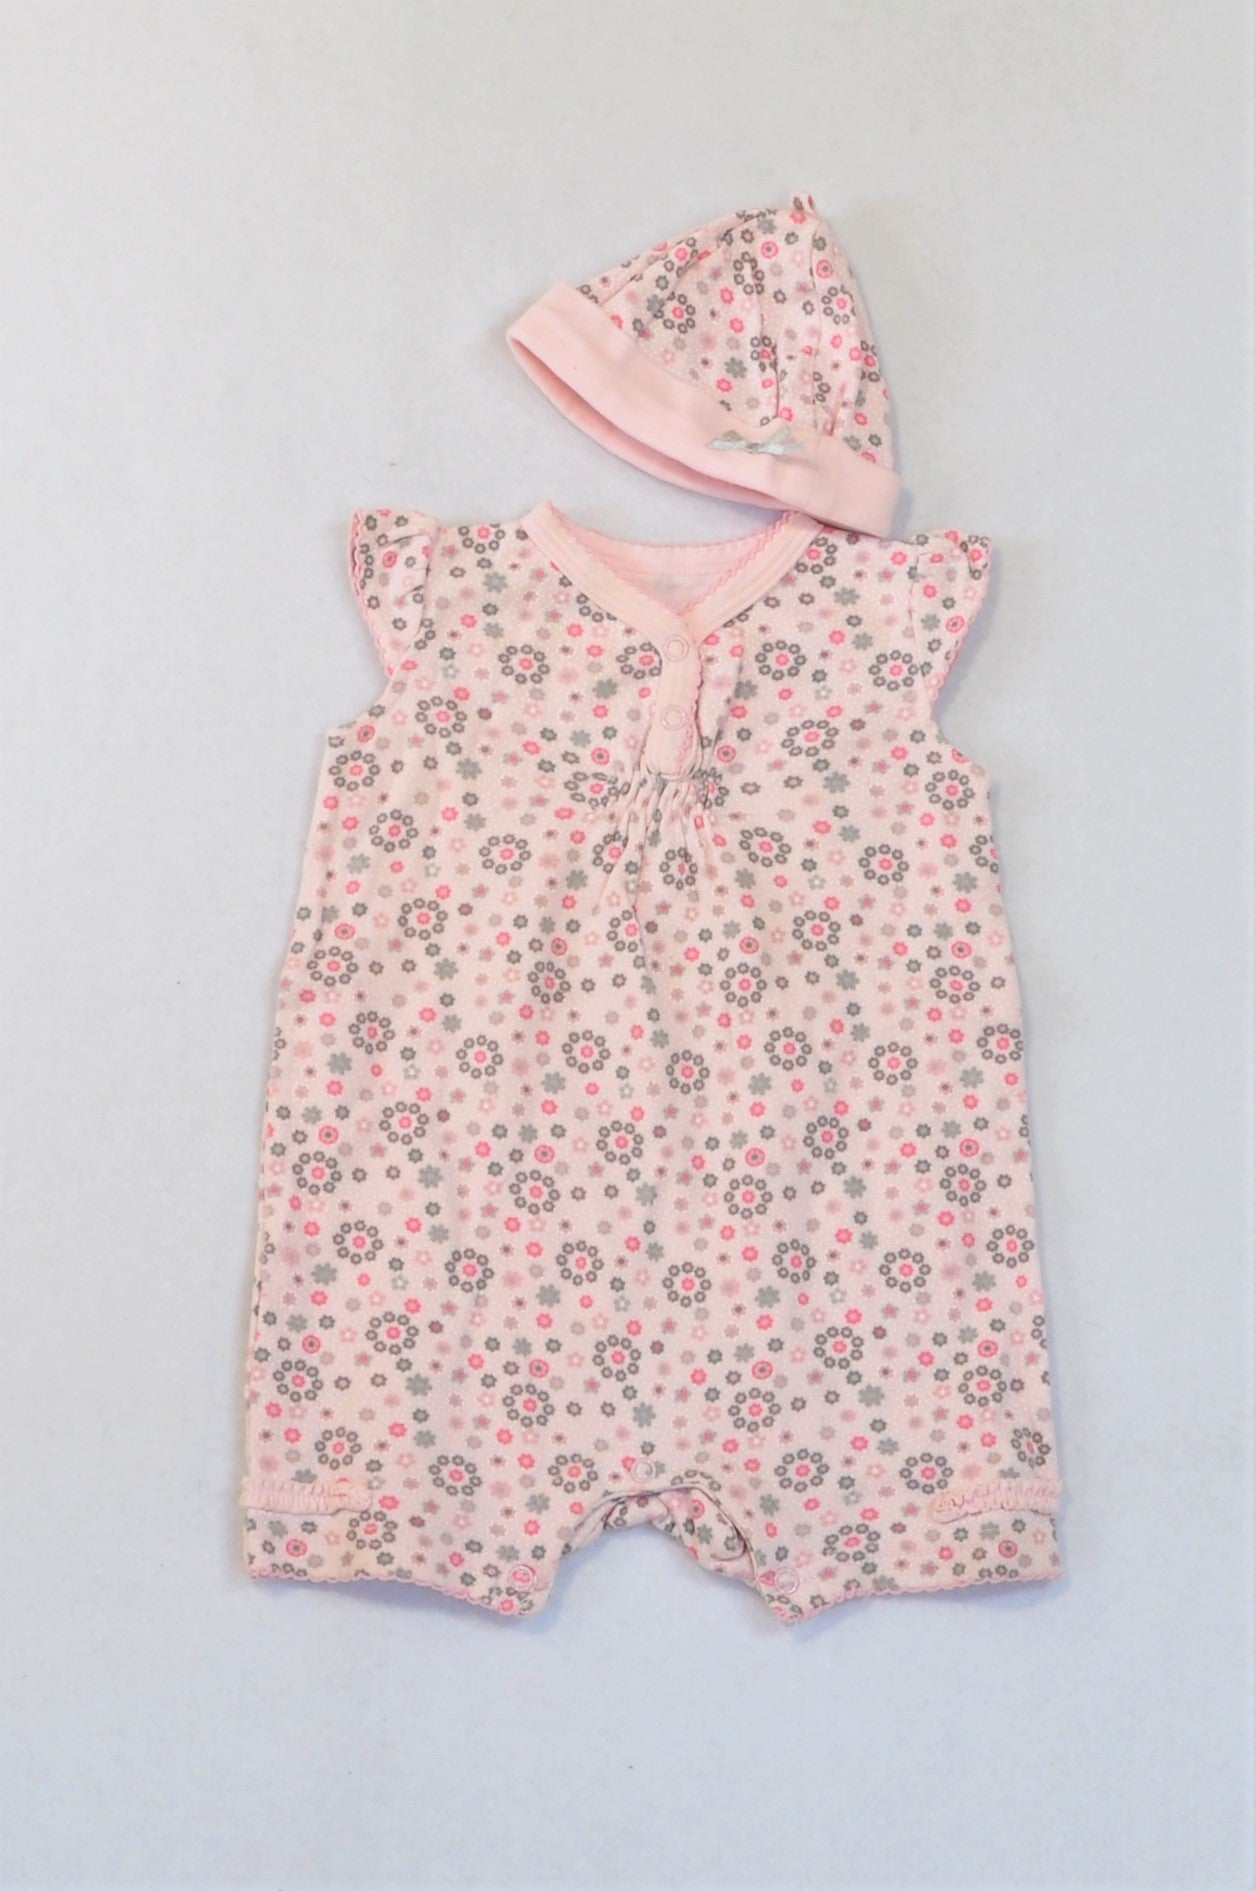 Woolworths Light Pink & Grey Ditsy Flower Romper & Beanie Outfit Girls N-B